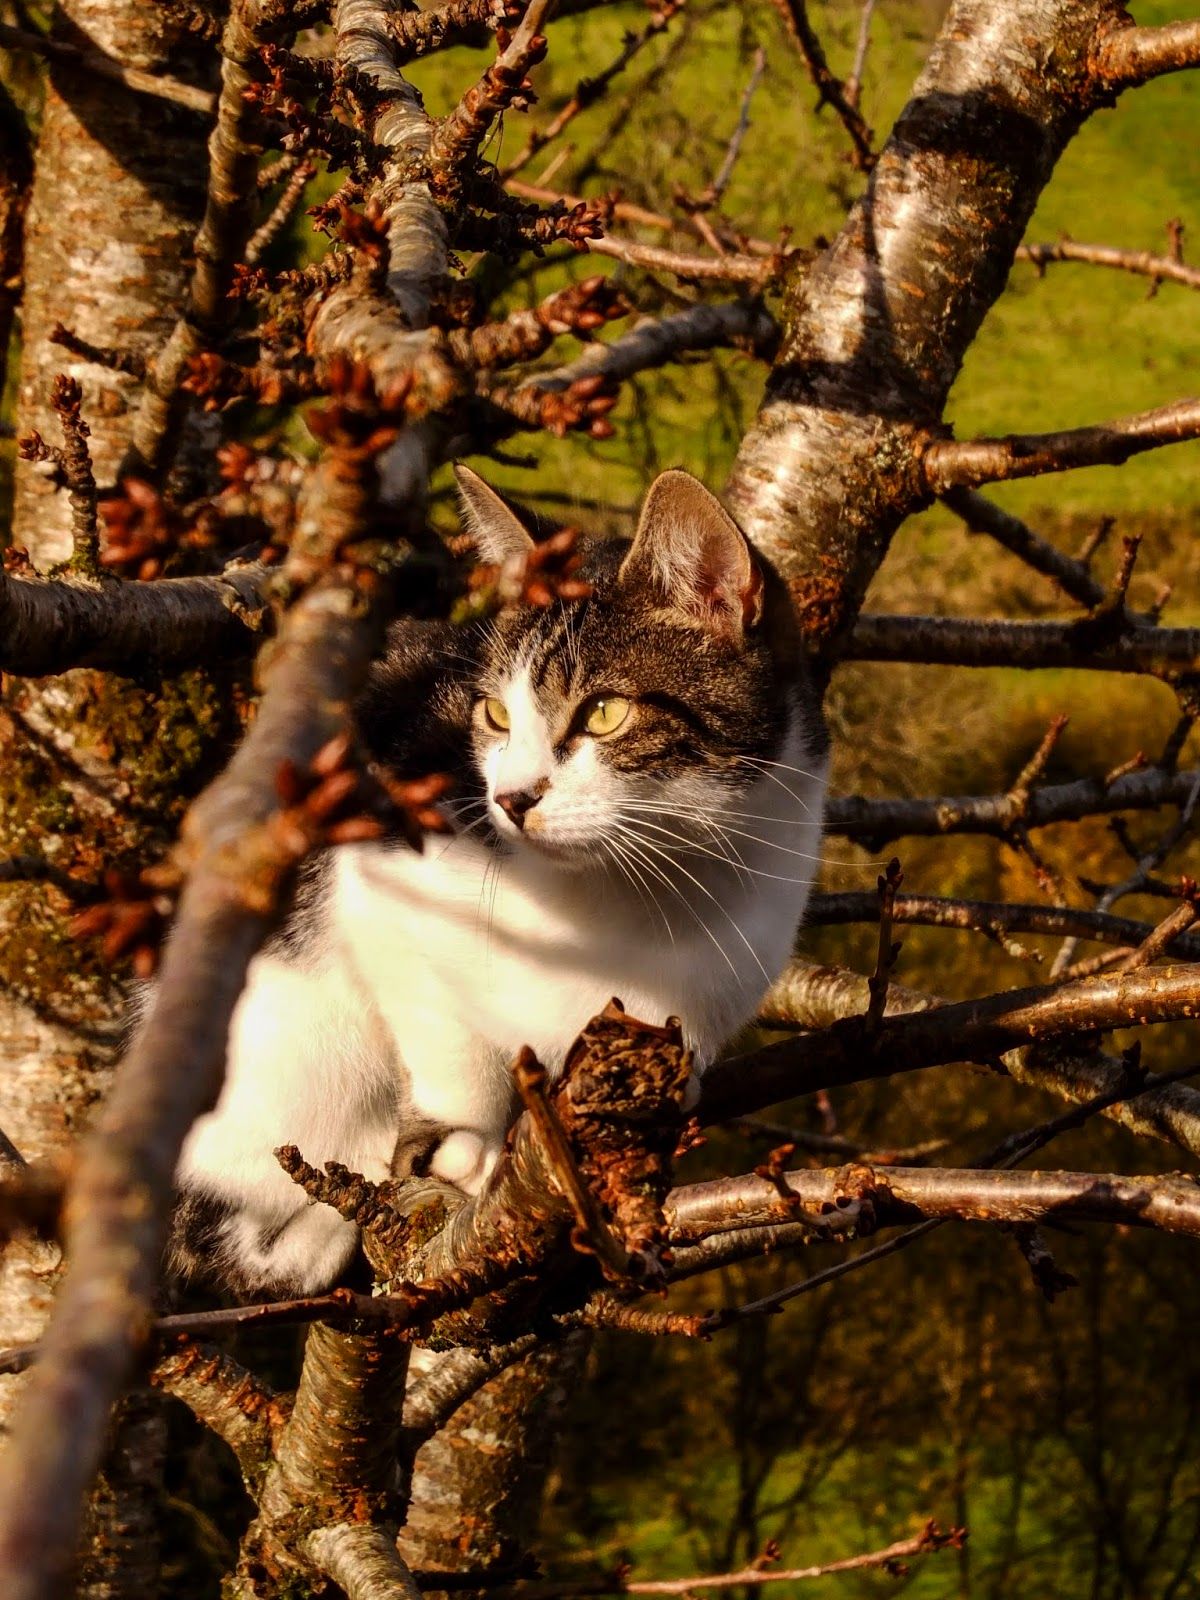 Sassy the cat sitting in a sunny spot inside a cherry tree.